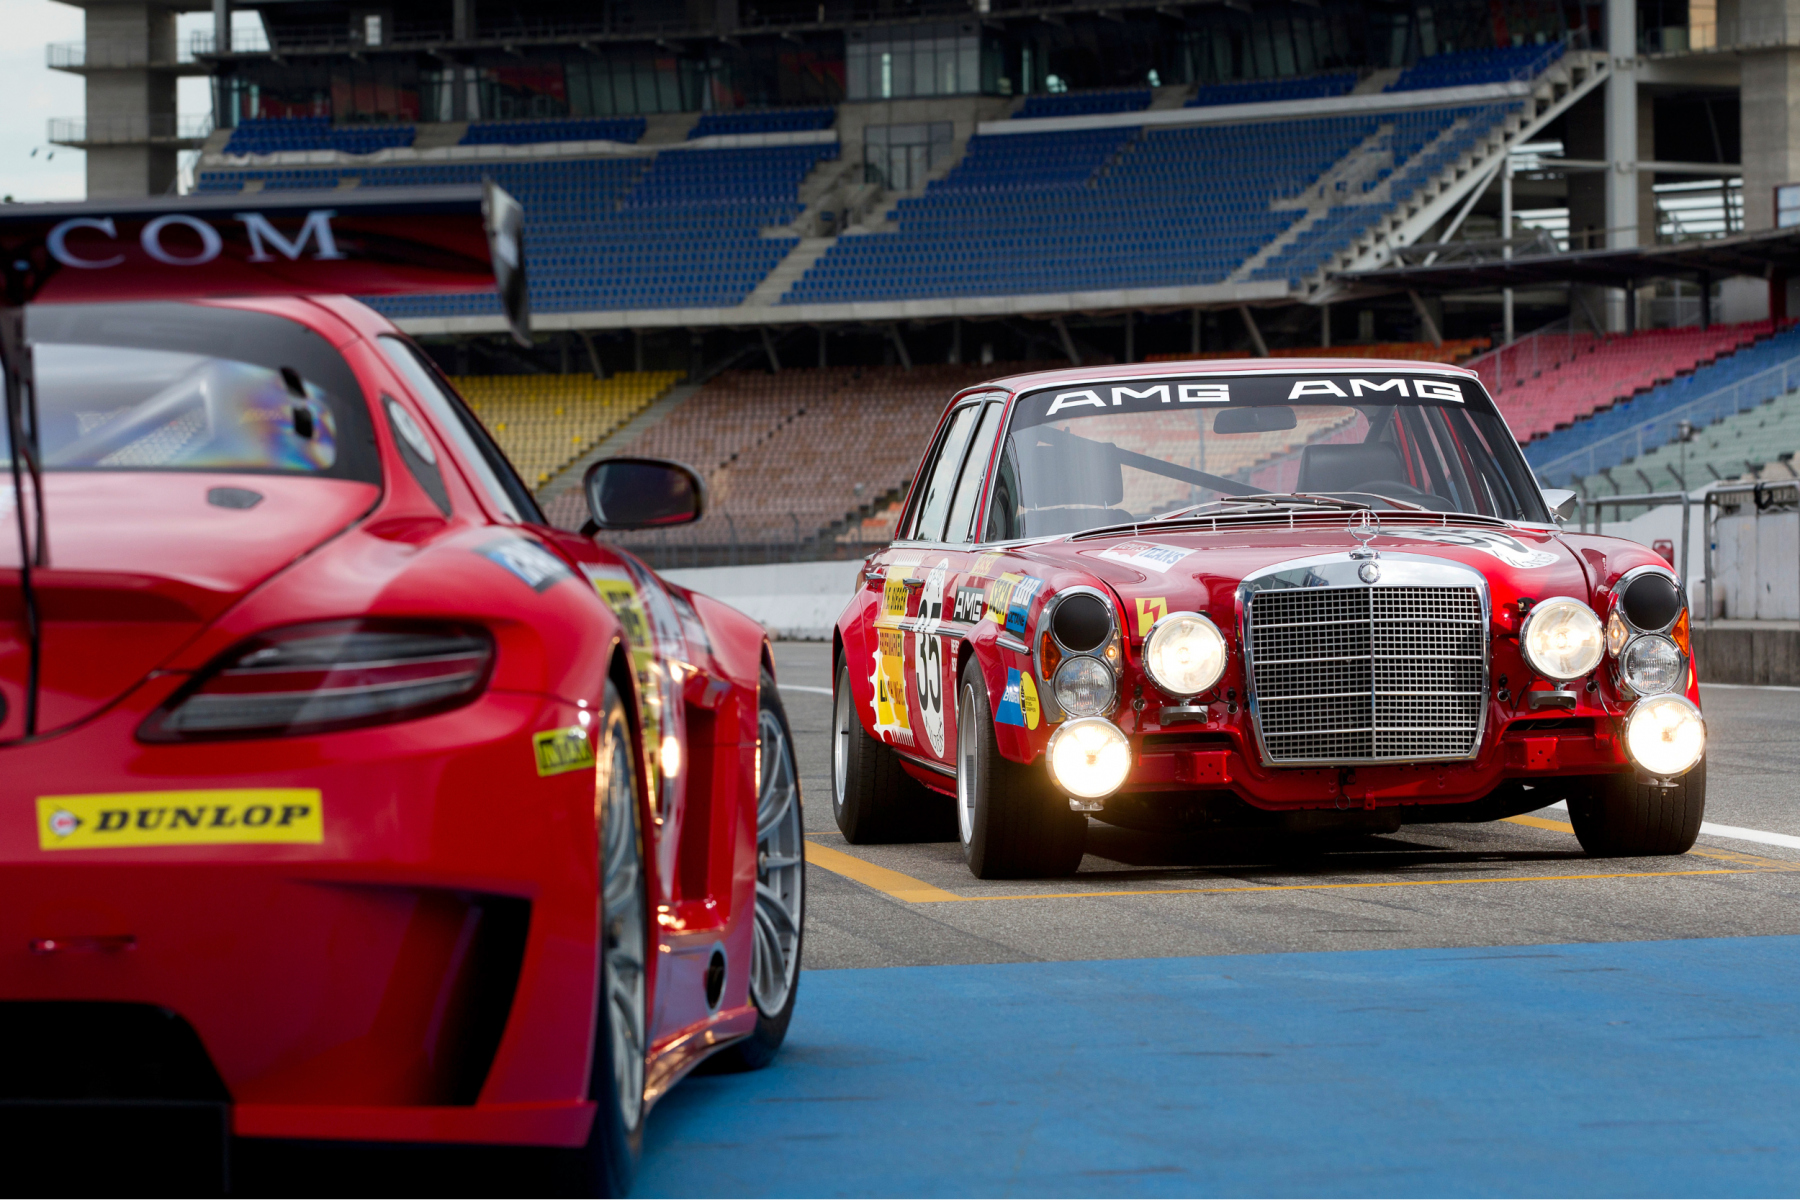 AMG 300 SEL 6.8 racing touring car based on the Mercedes-Benz 300 SEL 6.3 (W 109) luxury saloon, detailed reconstruction from 2006 (rear), and Mercedes-Benz SLS AMG GT3 racing car (C 197, front left) with a decal based on the racing touring car of 1971. Photo from 2011.